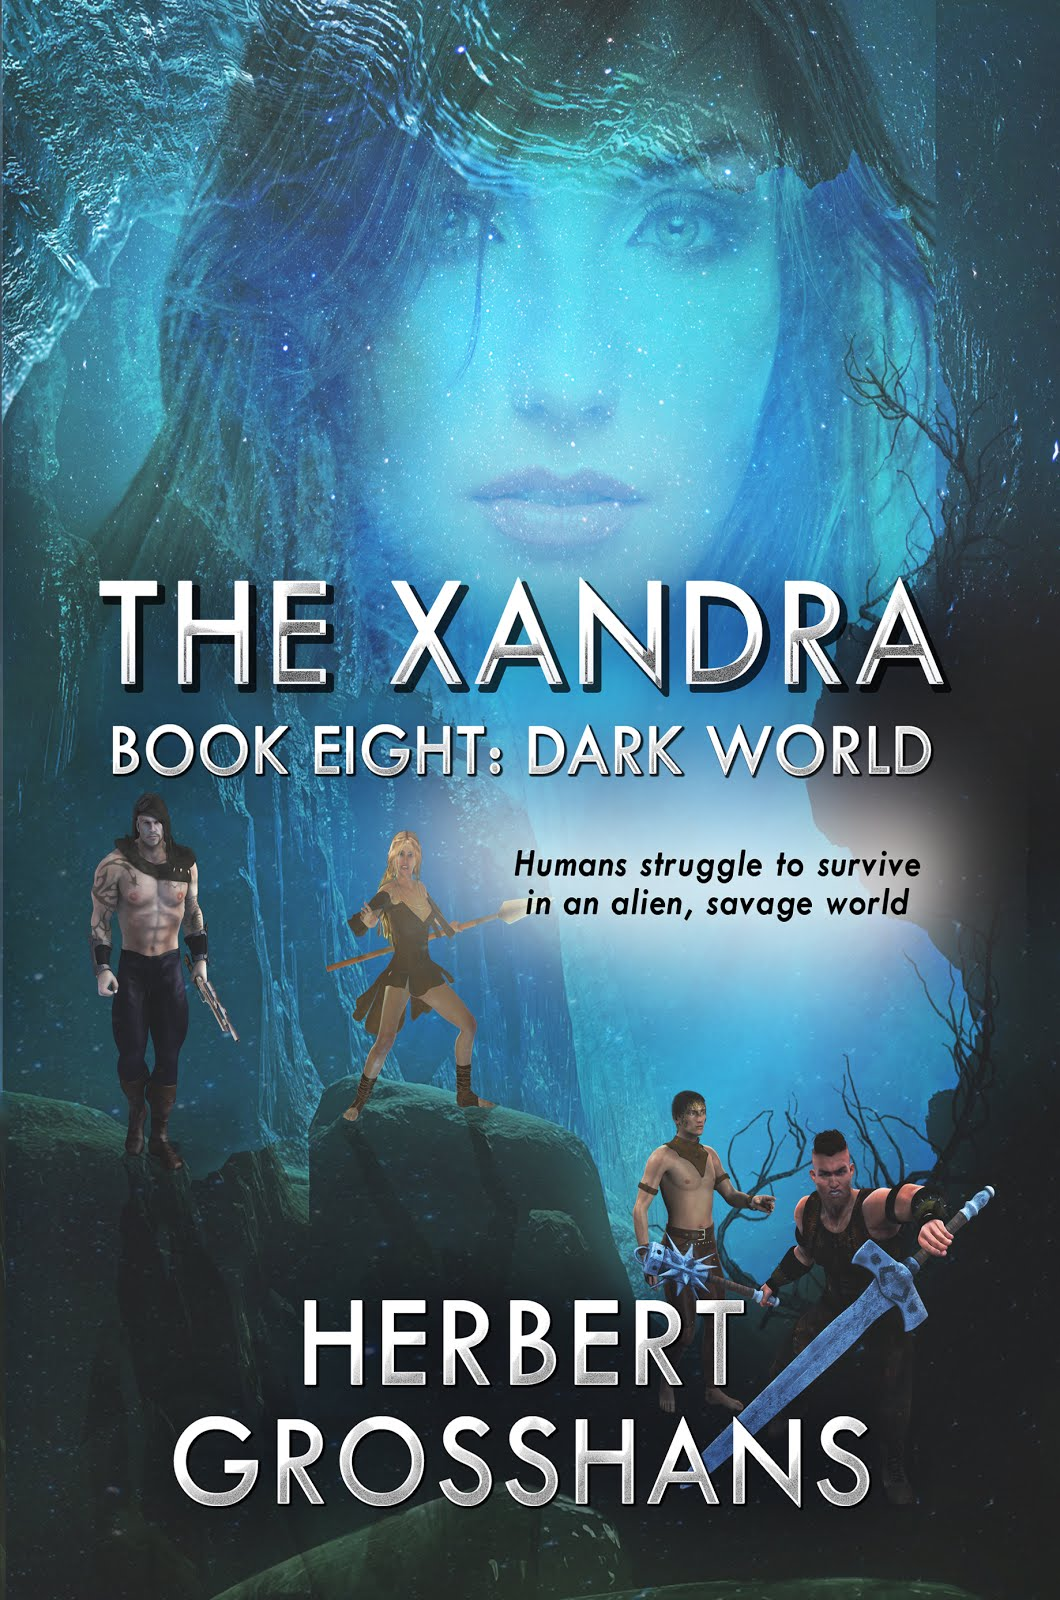 The Xandra, Book Eight